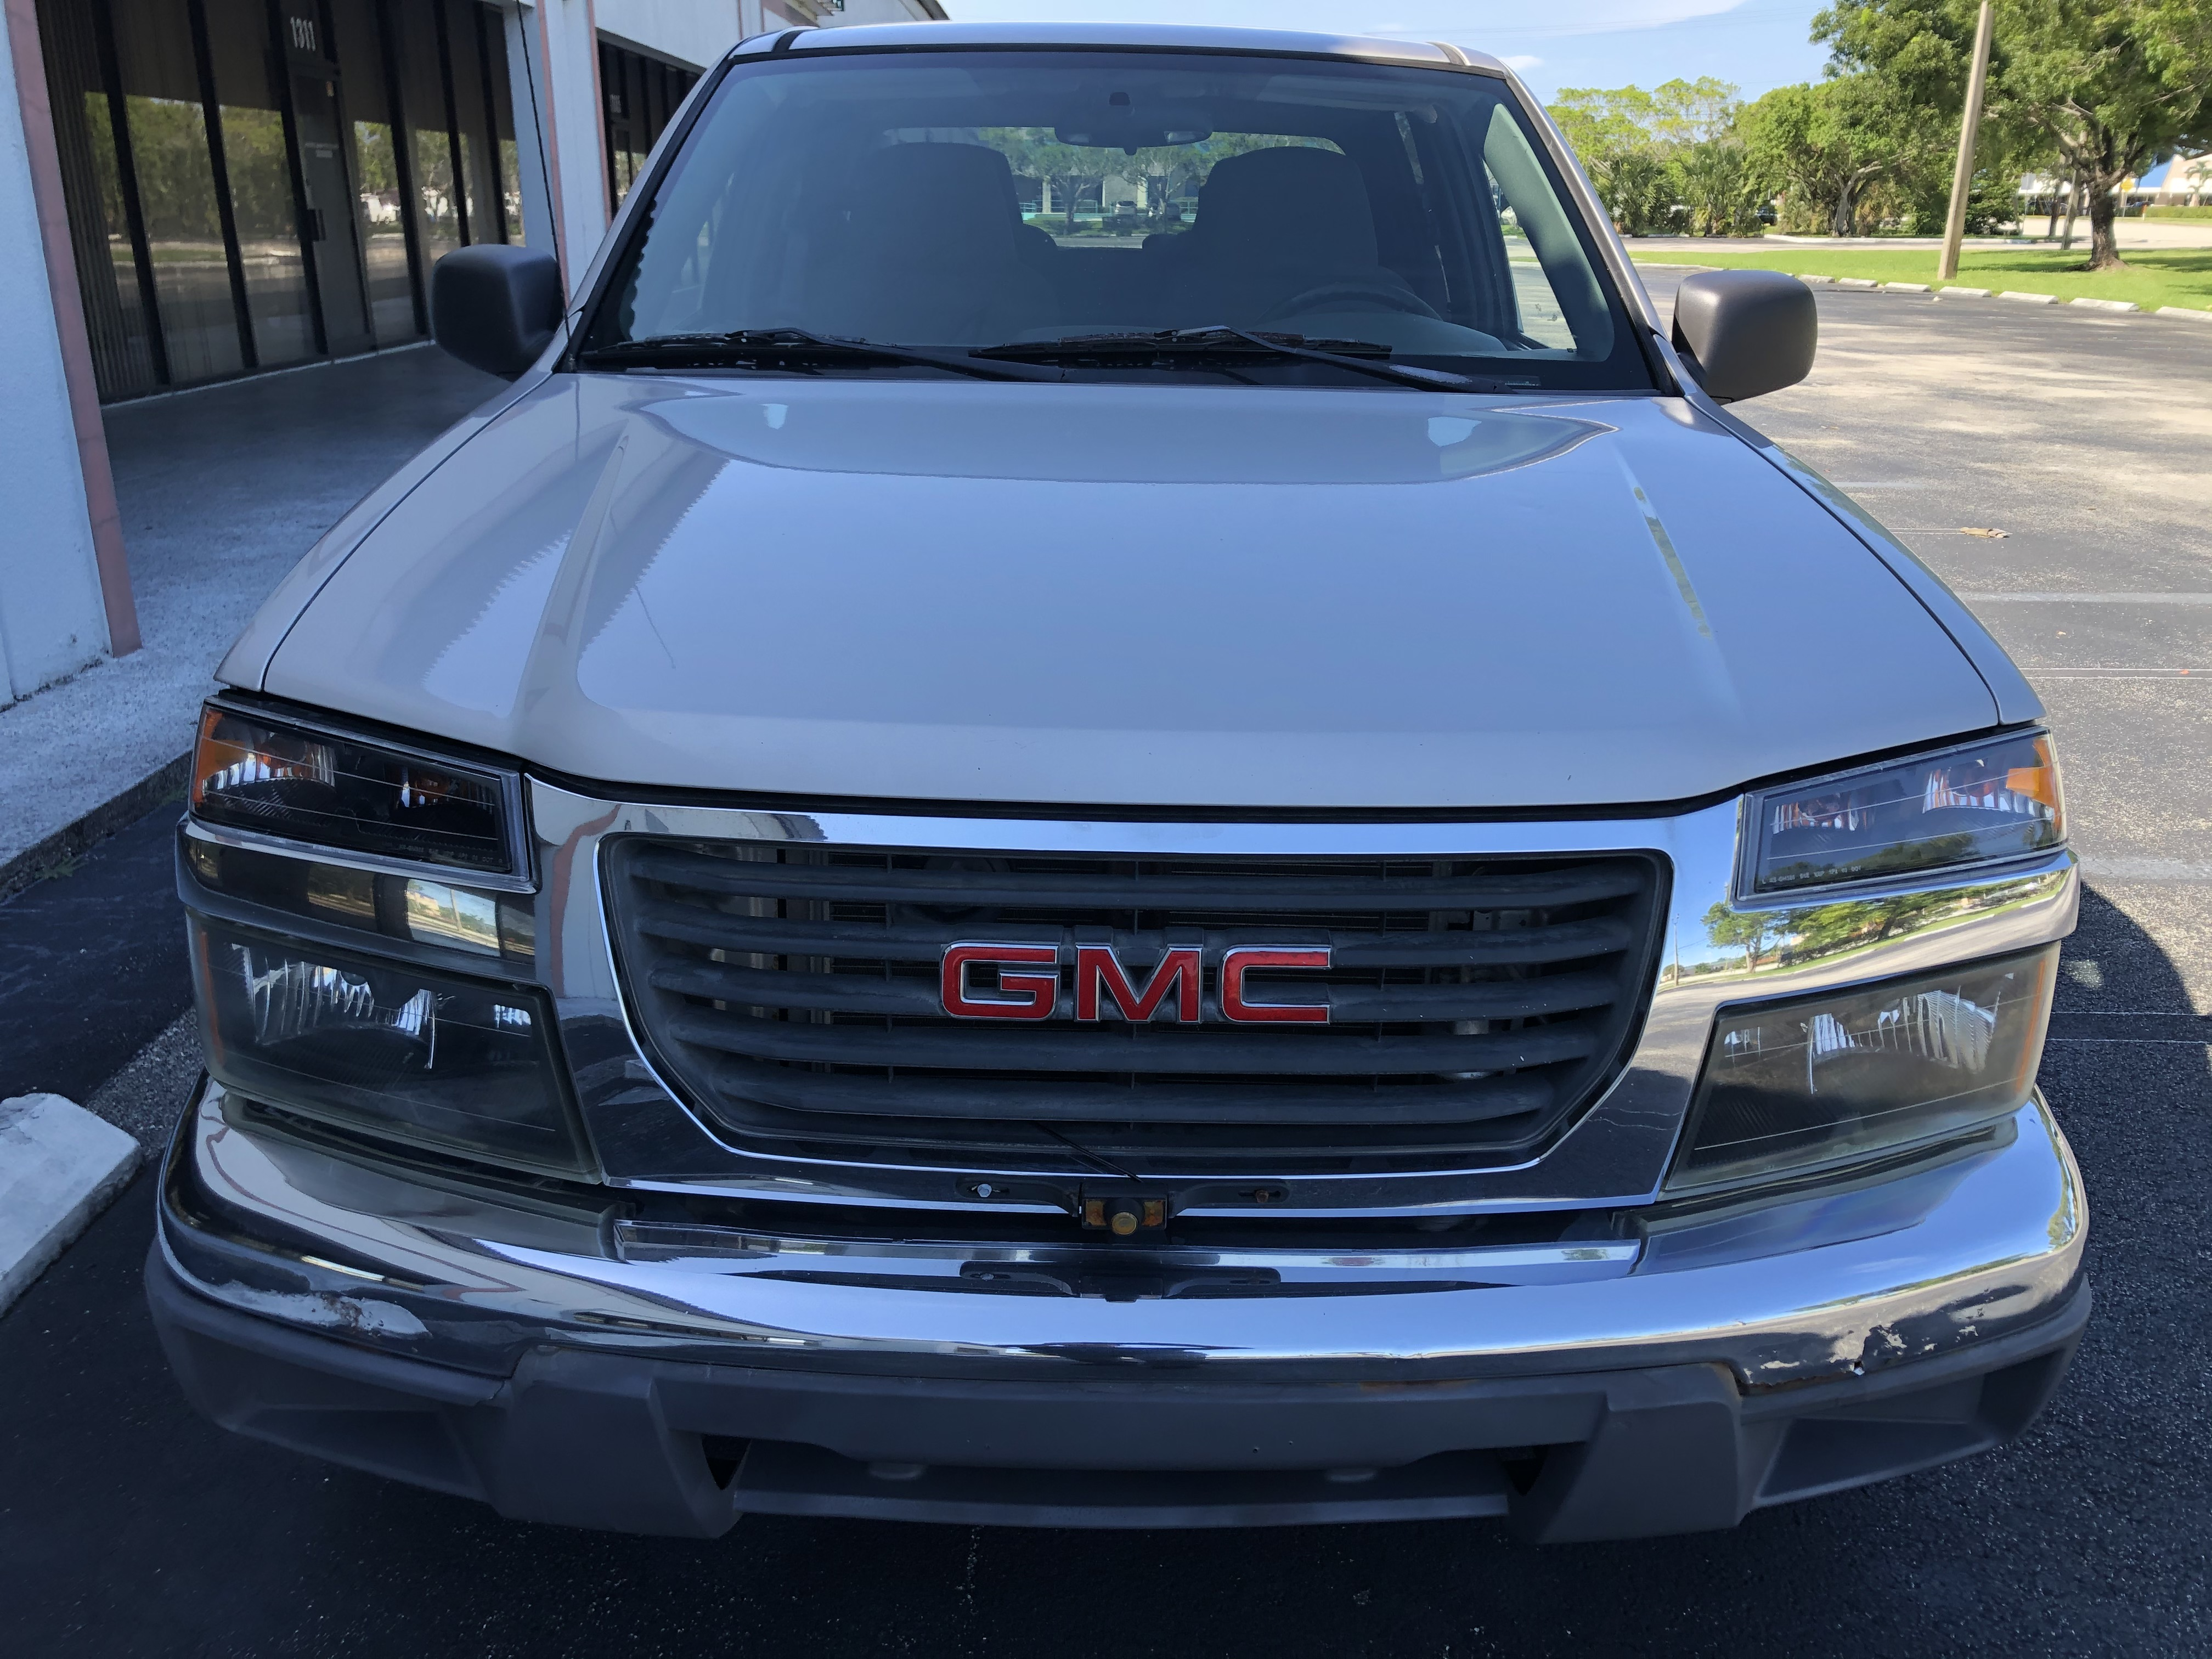 2005 GMC CANYON $5,950